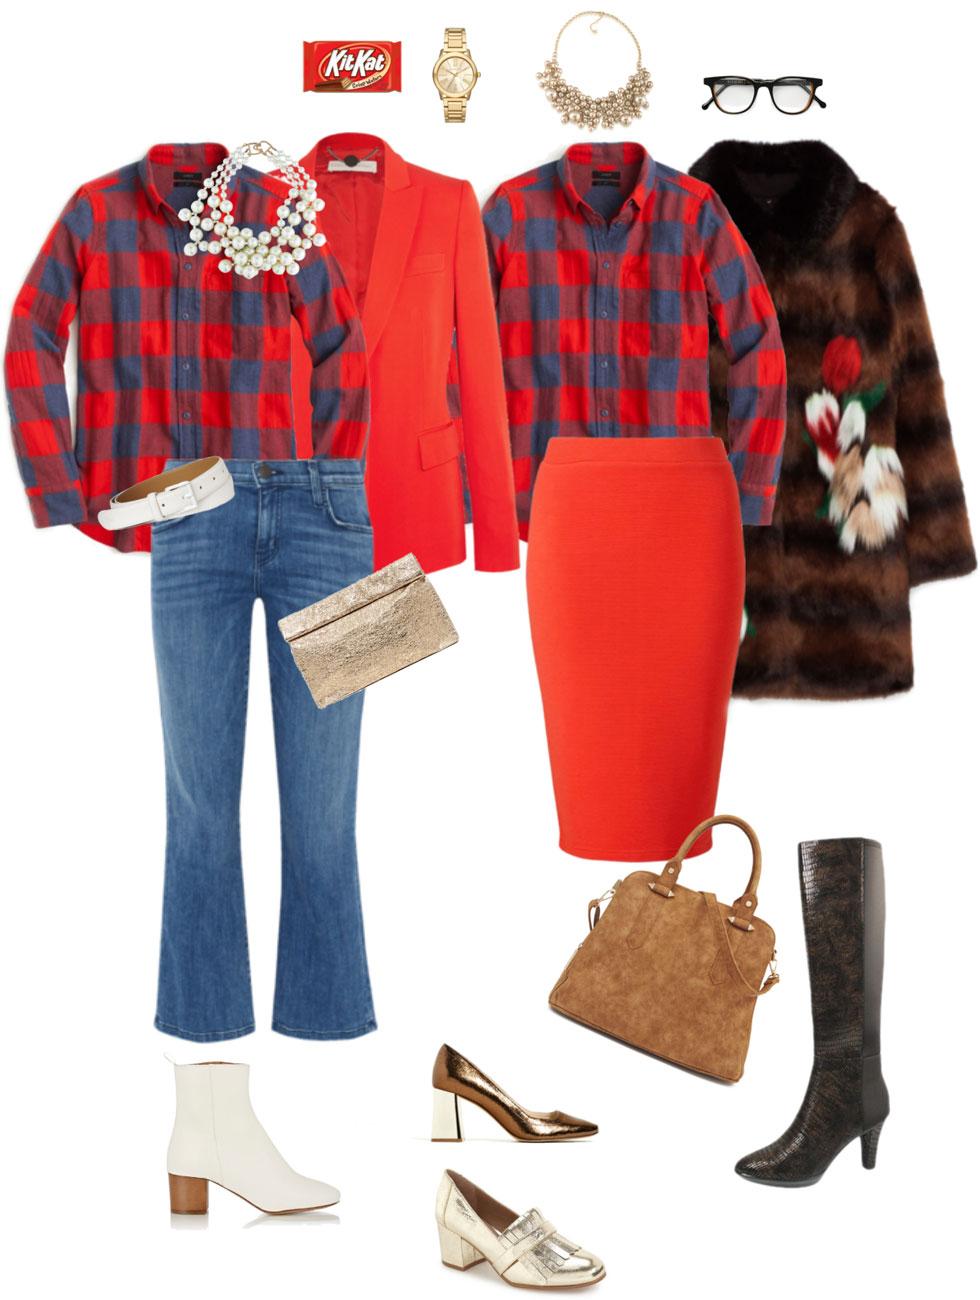 Ensemble: Two Plaid Shirt Combinations